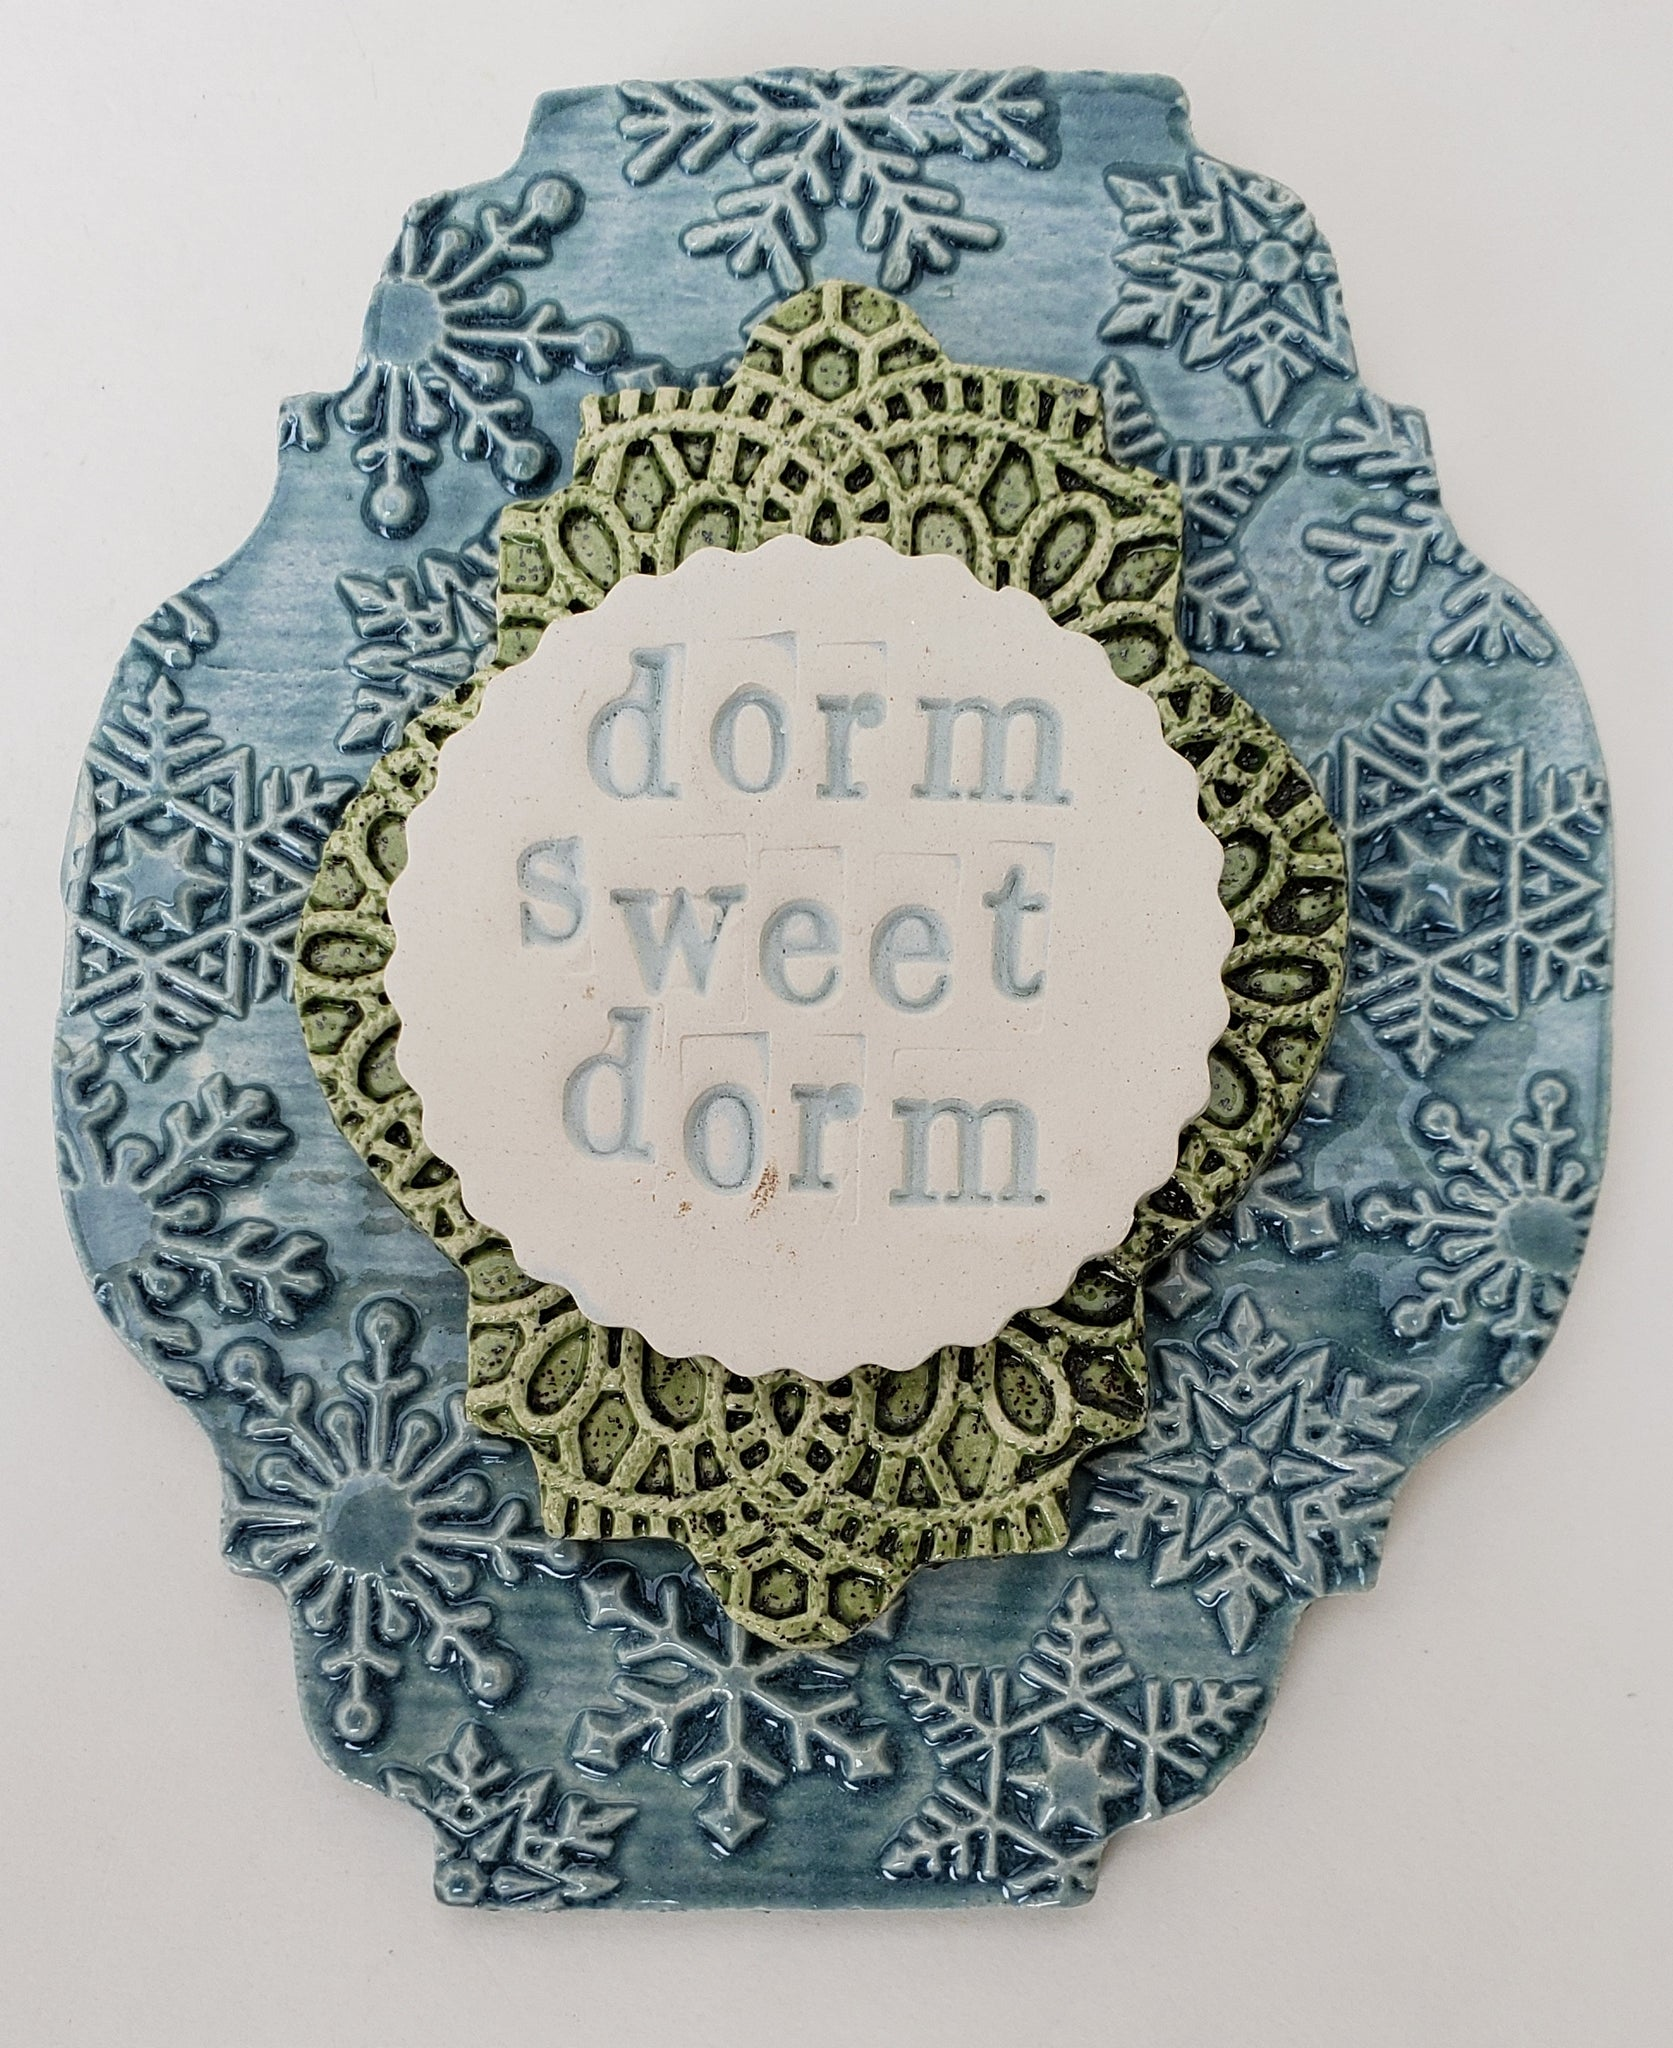 Dorm Sweet Dorm Word Plaque - Artworks by Karen Fincannon